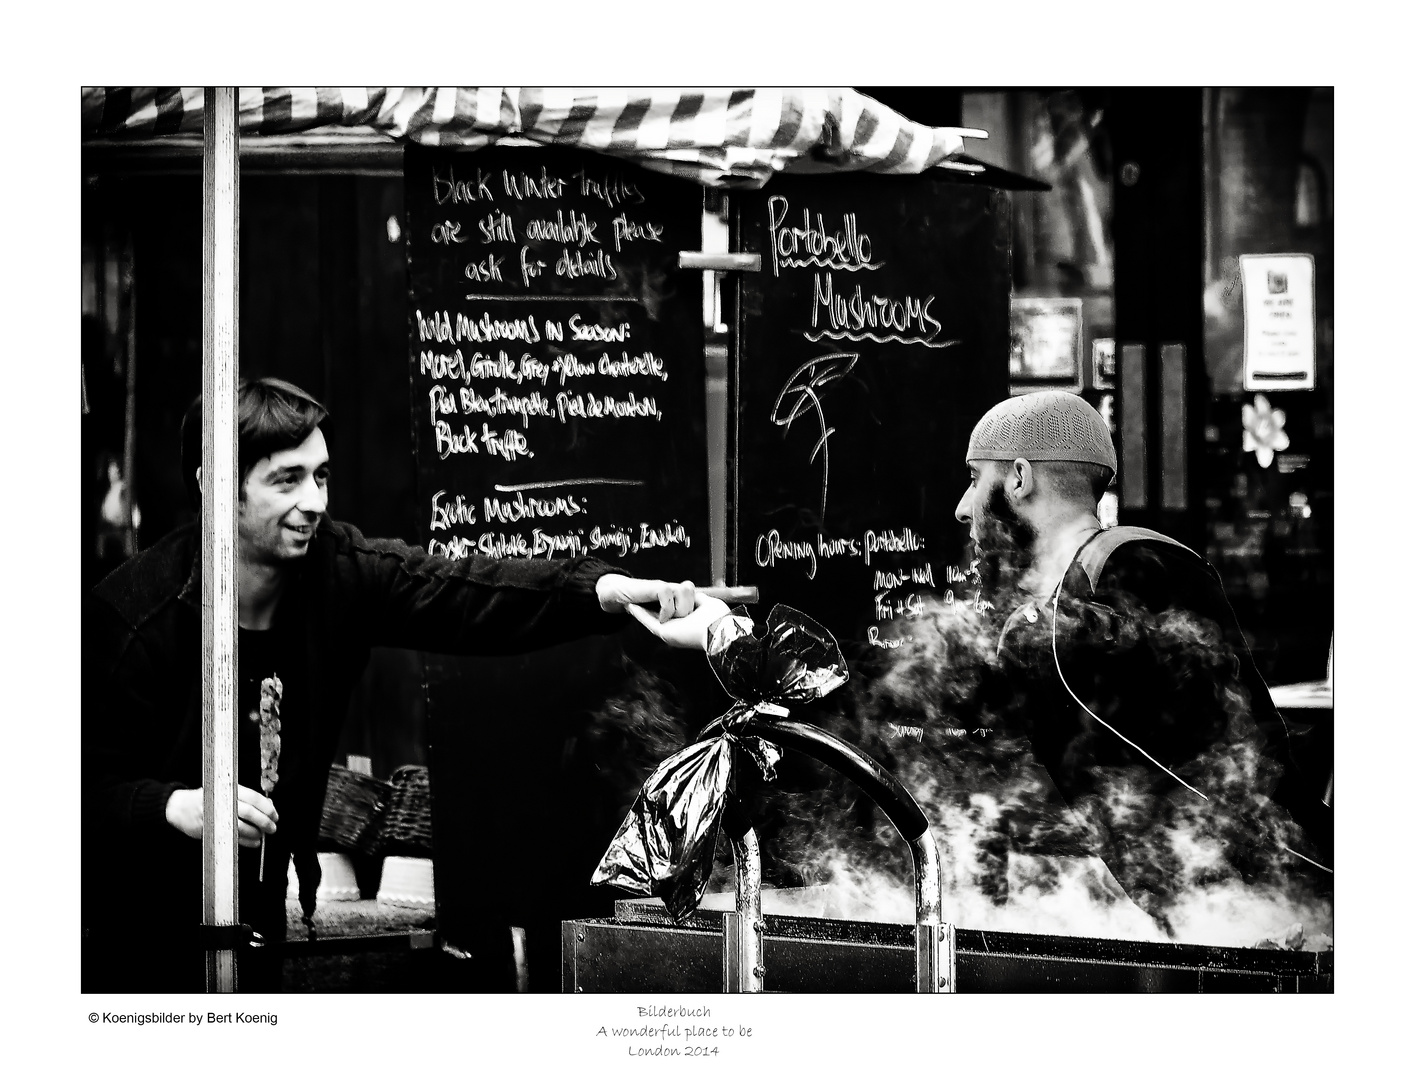 A wonderful place to be - Portobello Road Business